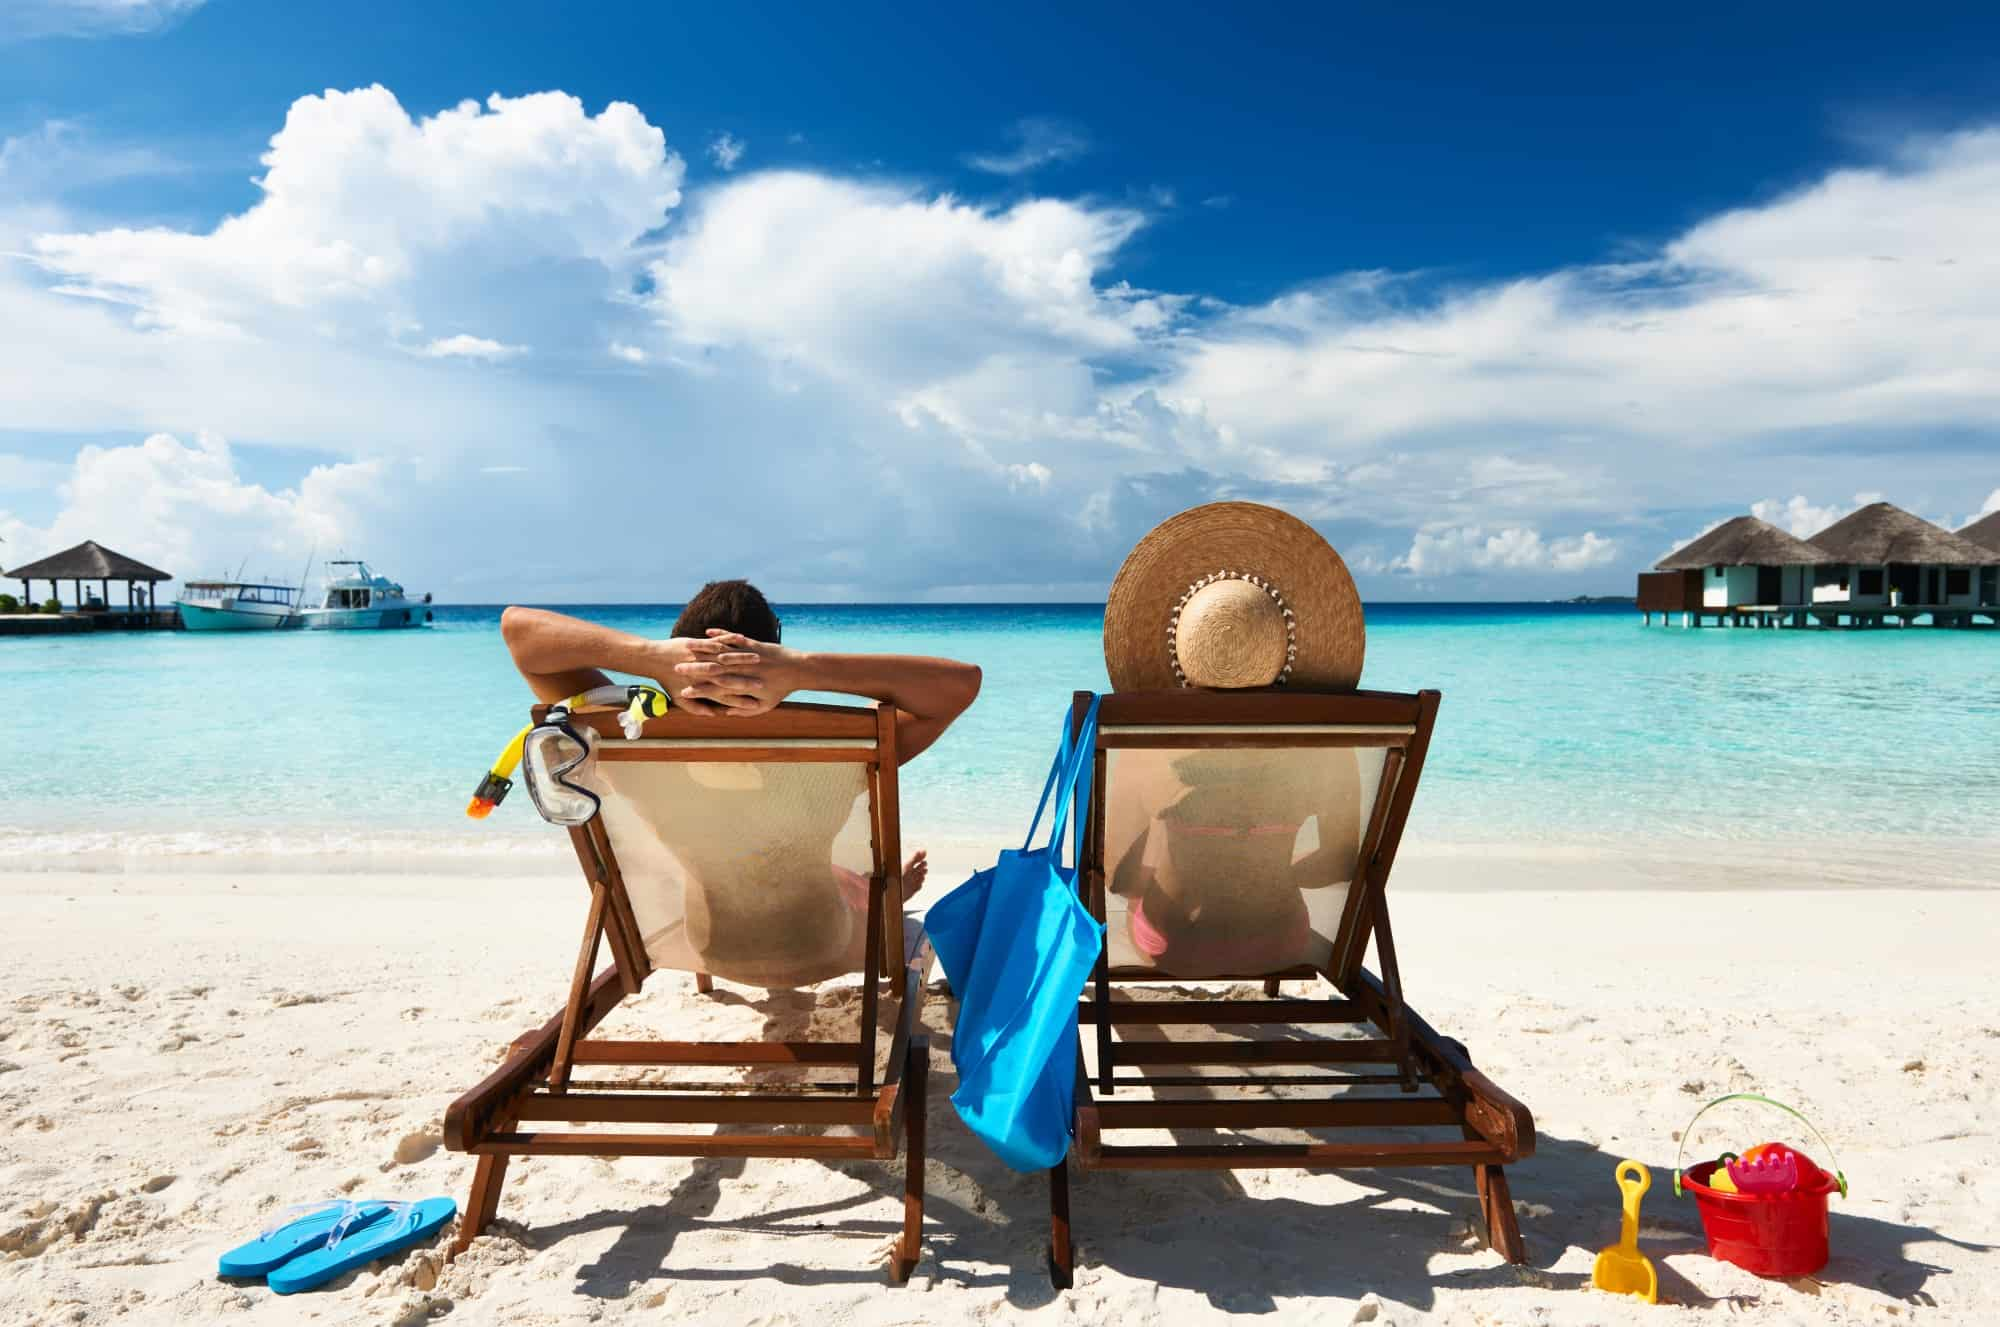 Should You Use Payday Loans to Plan Holidays?